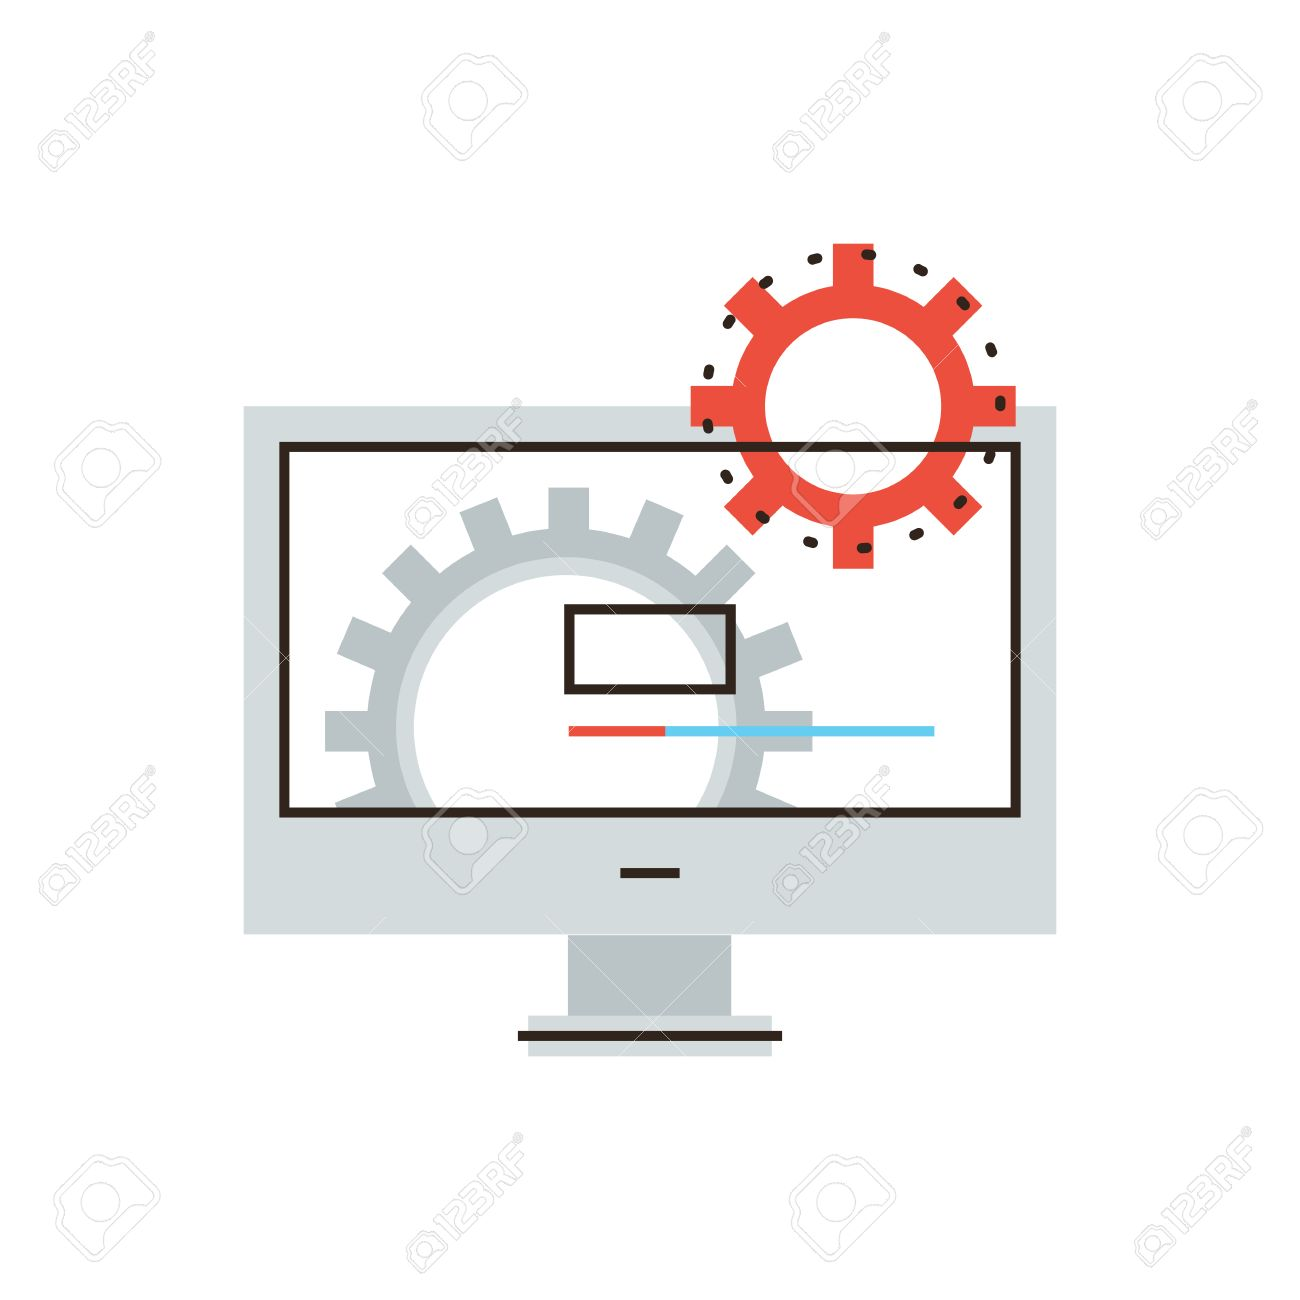 Thin line icon with flat design element of working computer, install new software, operating system, update support, mechanism works. - 38398764